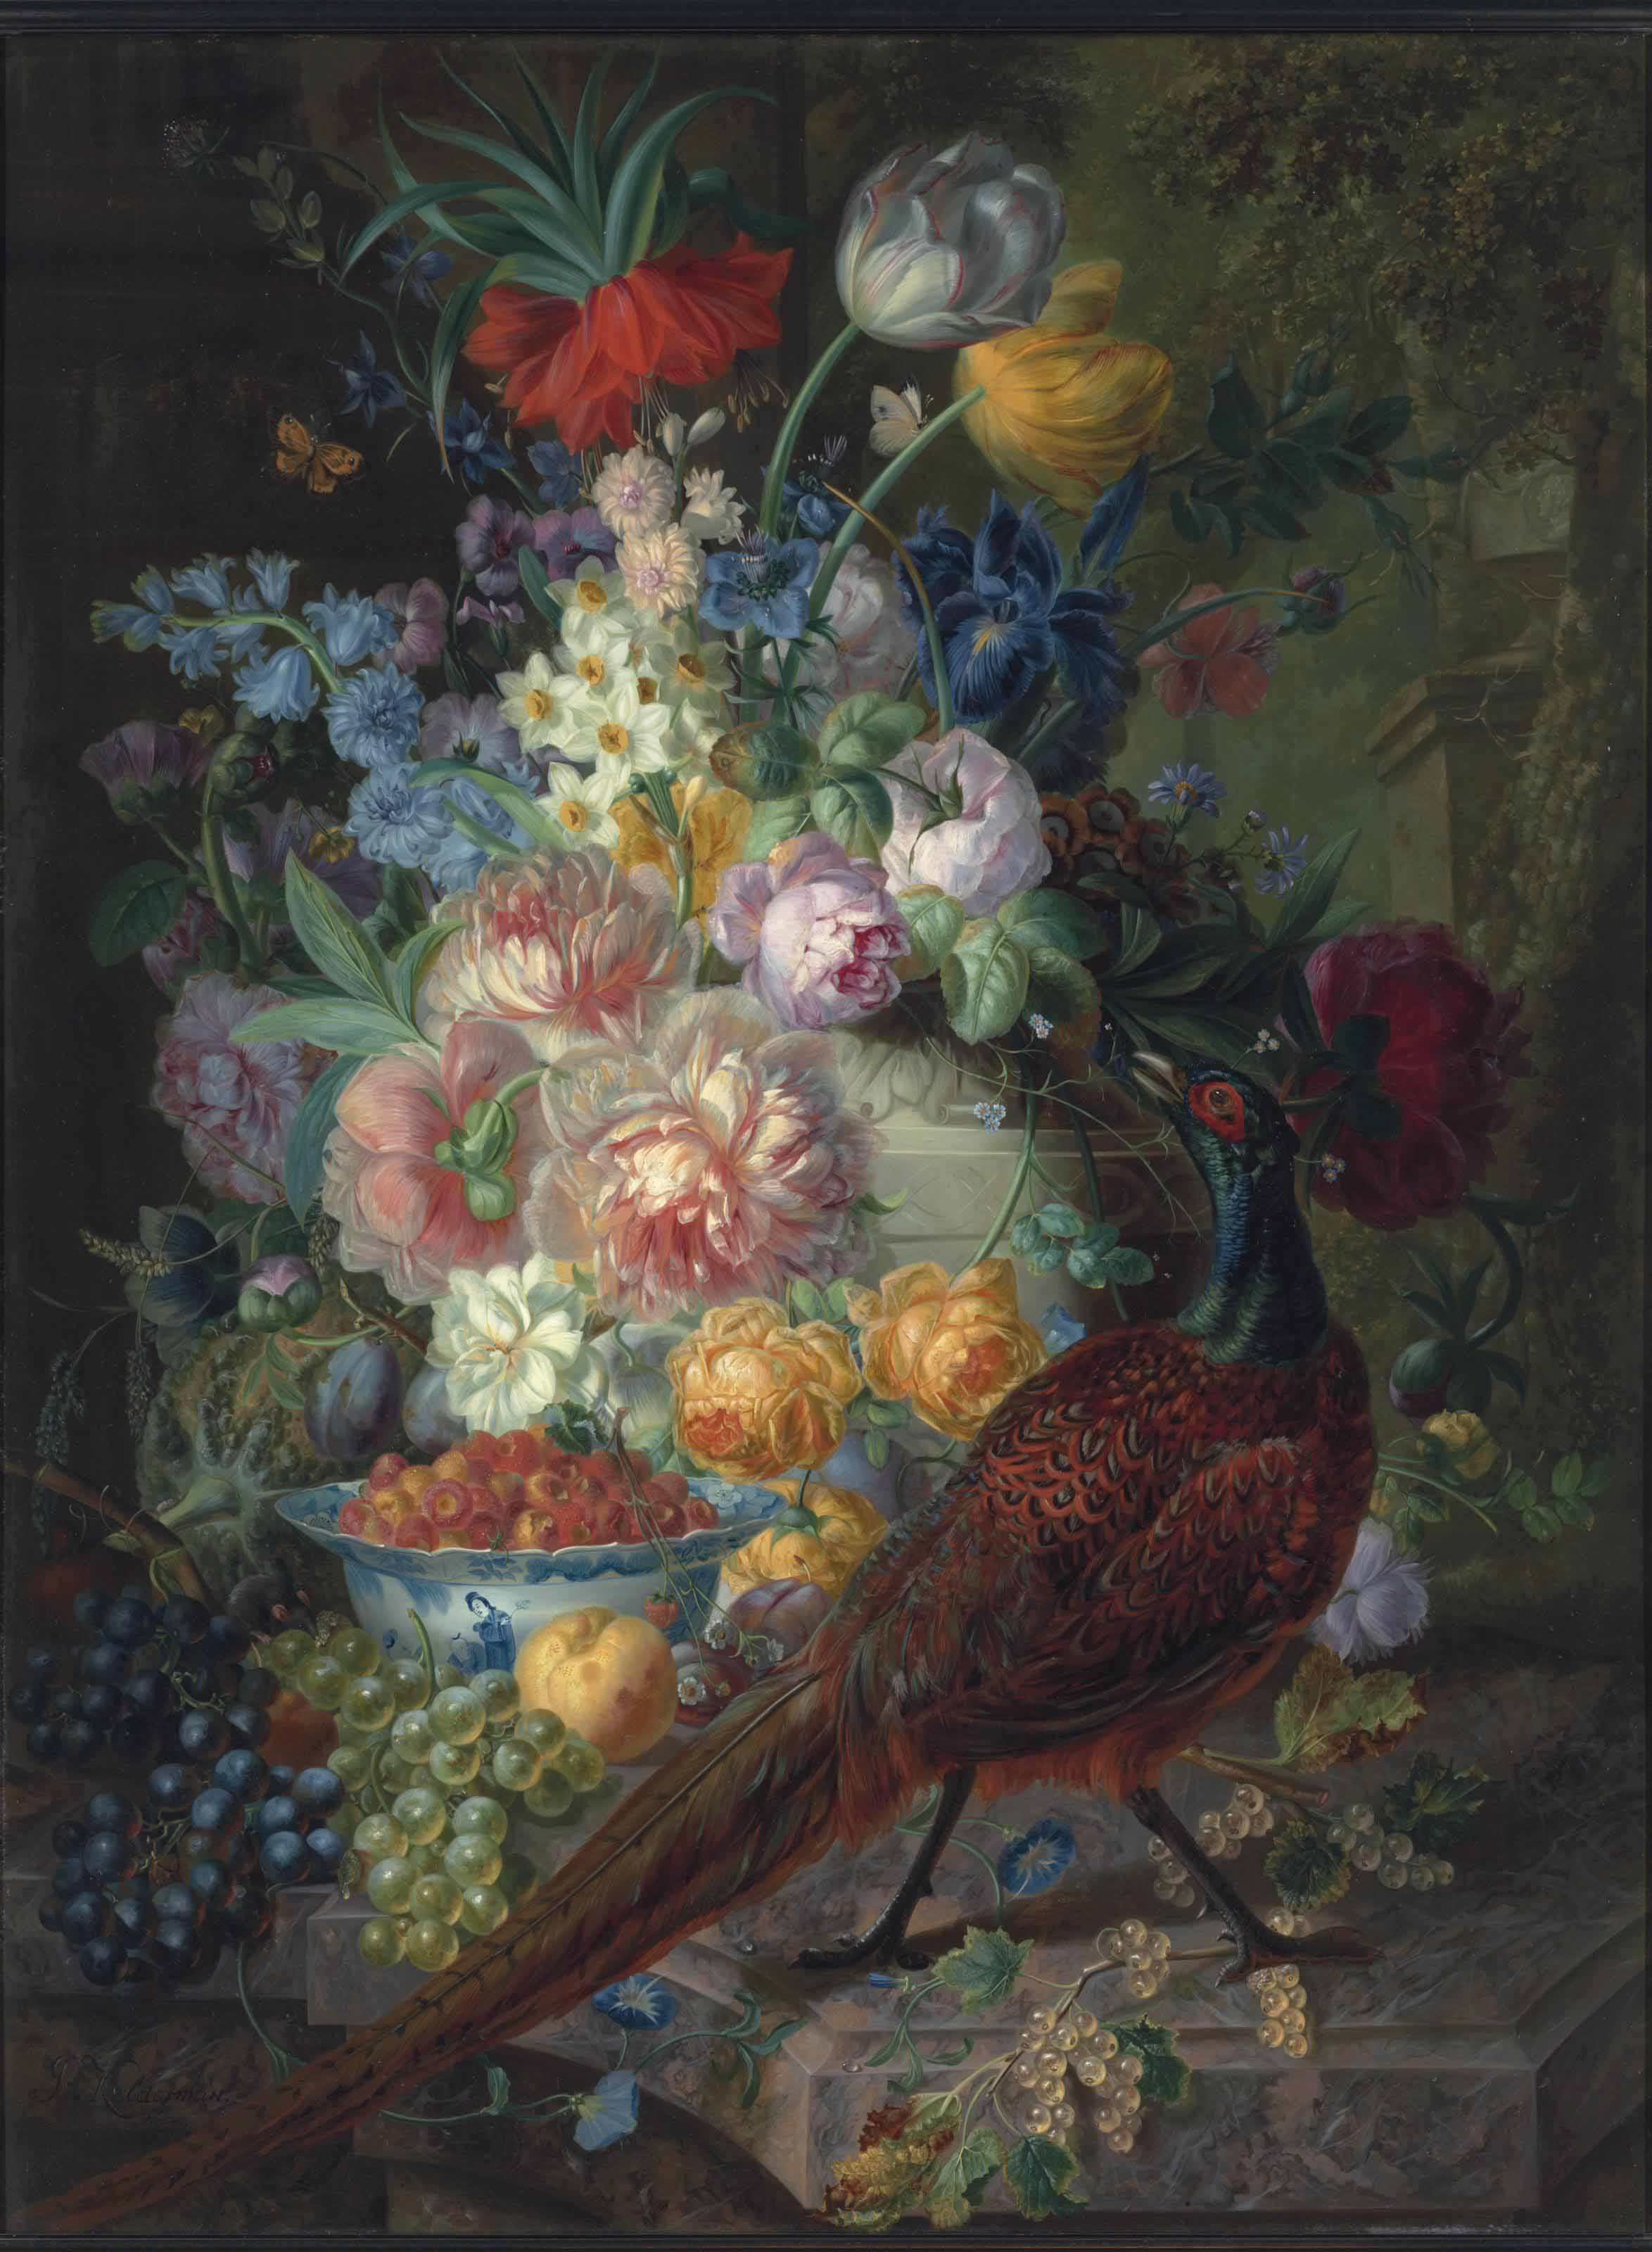 An arrangement of tulips, roses, irises, narcissus, grapes, white currants, a peach and a strawberry, with a pheasant and a mouse by a Chinese bowl, all on a marble ledge